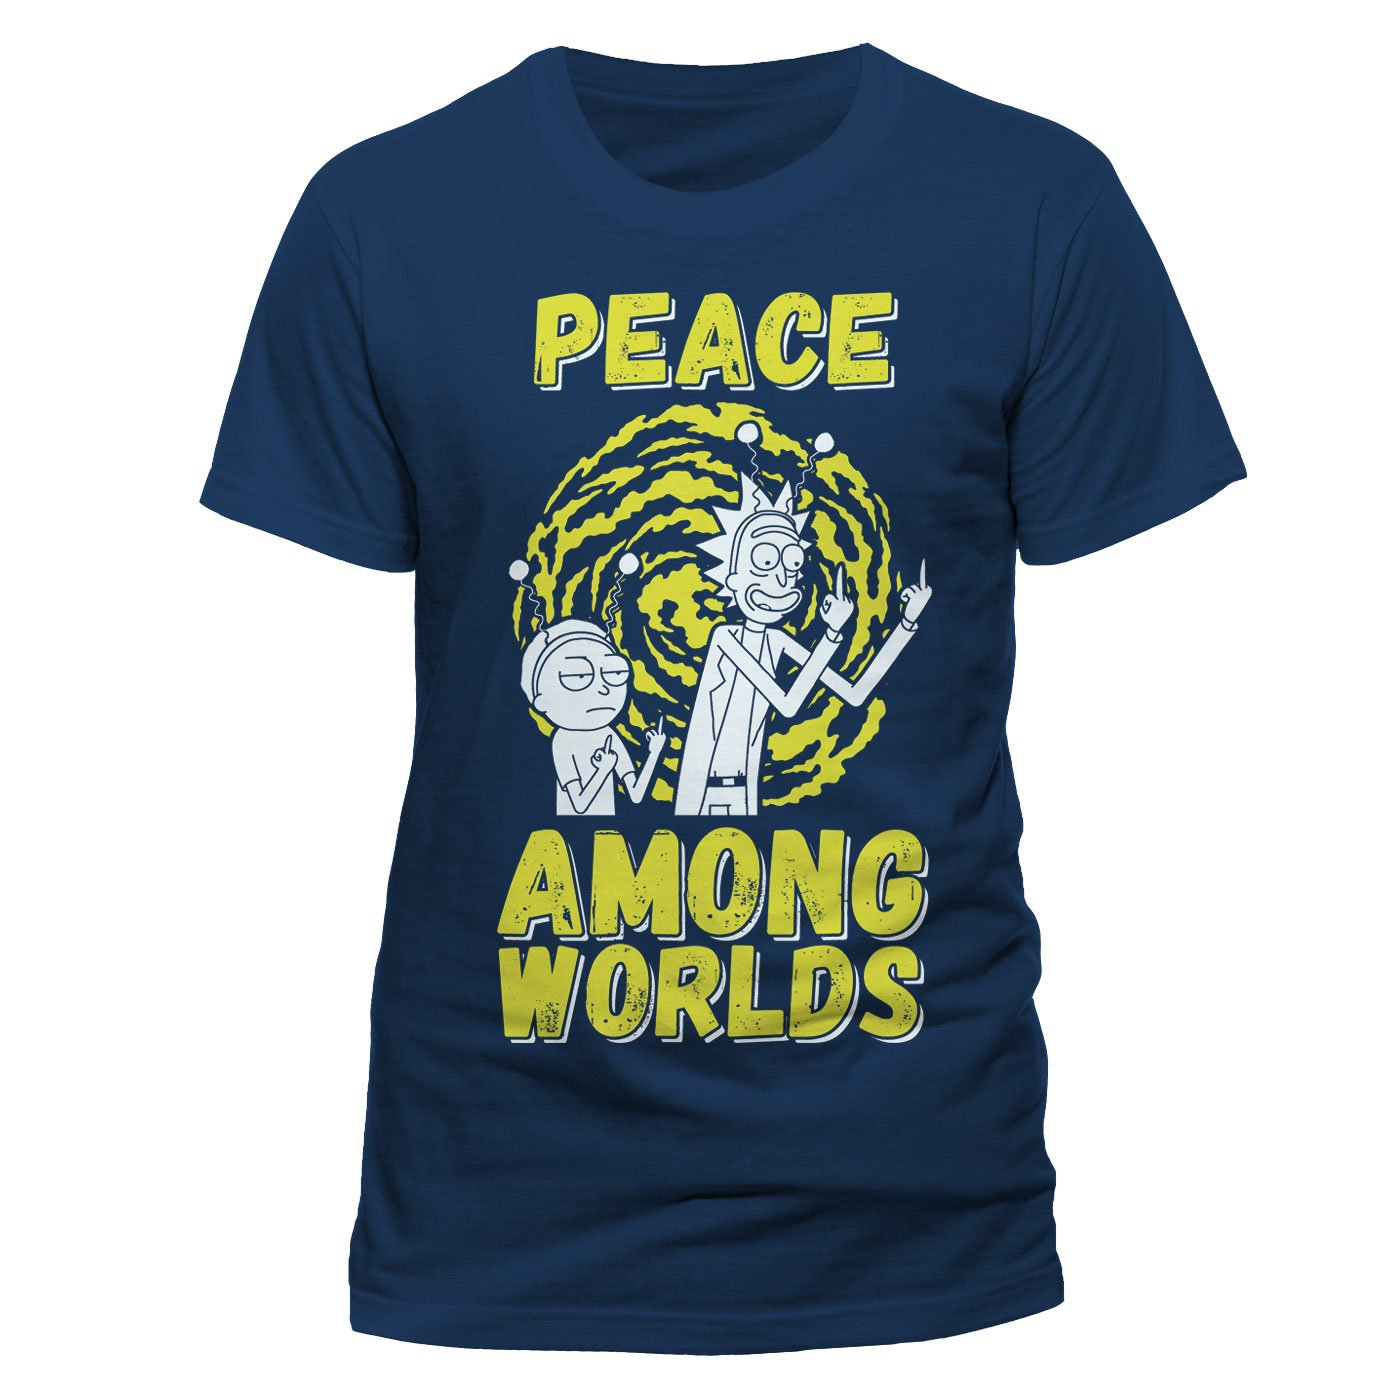 Rick and Morty T-Shirt Peace Among Worlds Size S